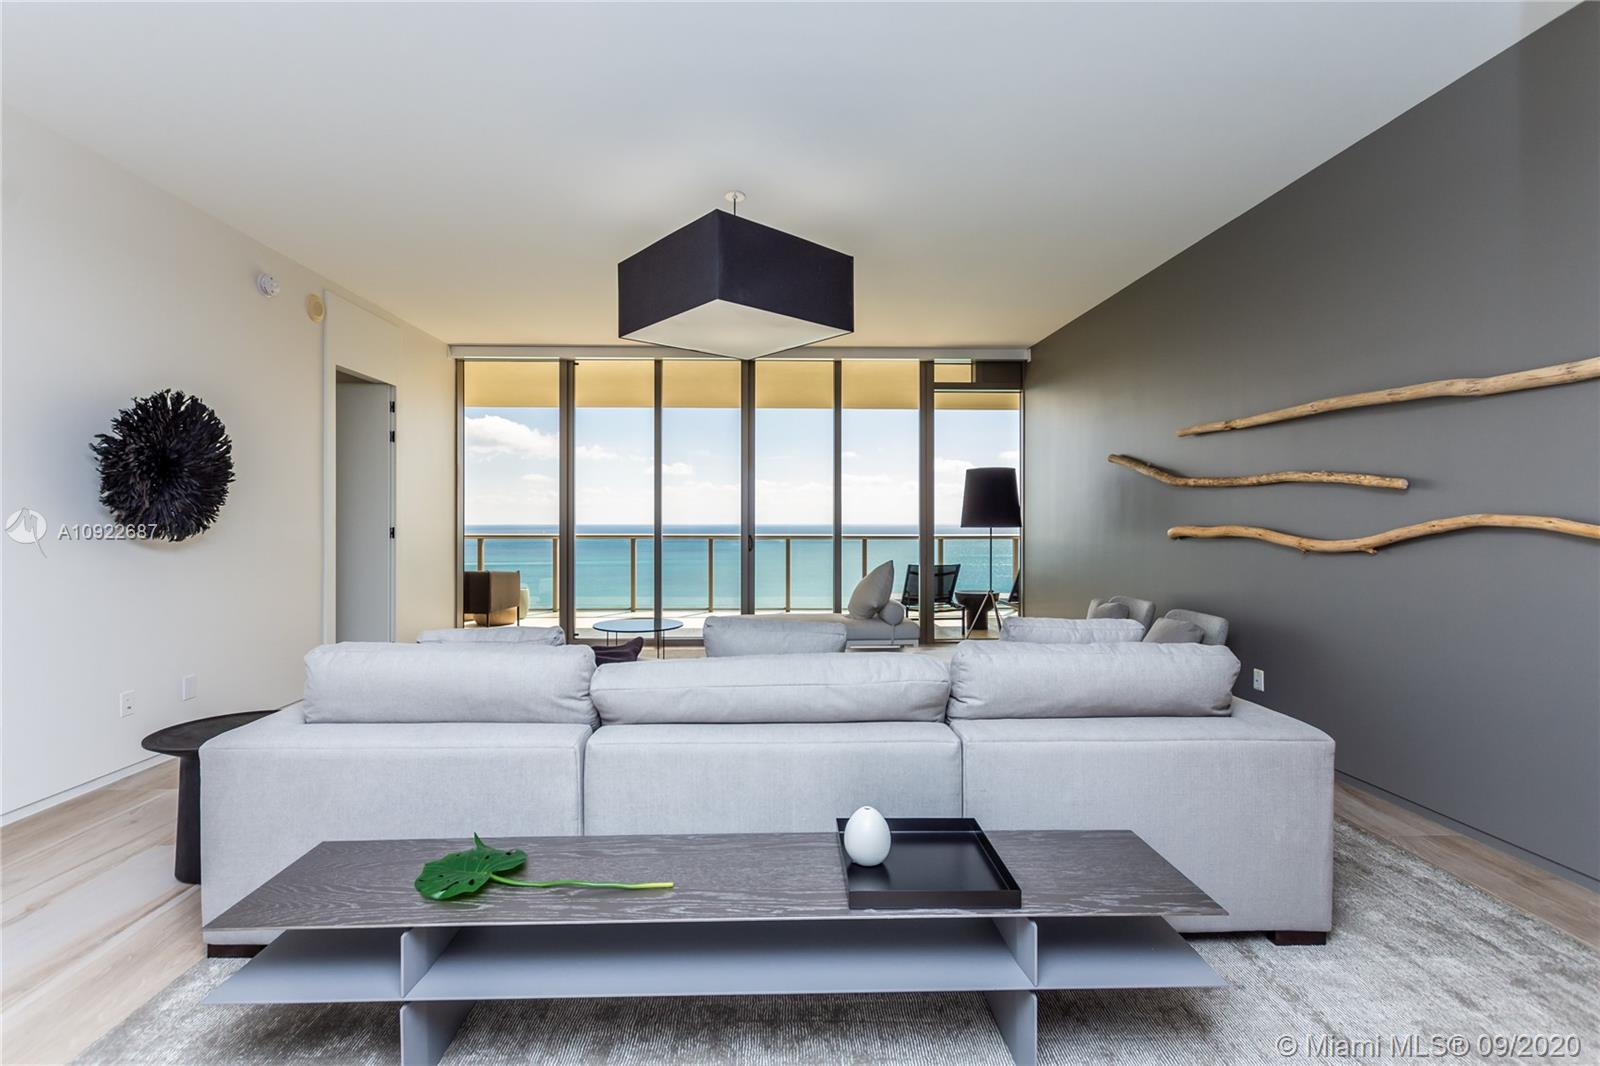 9705 Collins Ave, Unit #1802N Luxury Real Estate